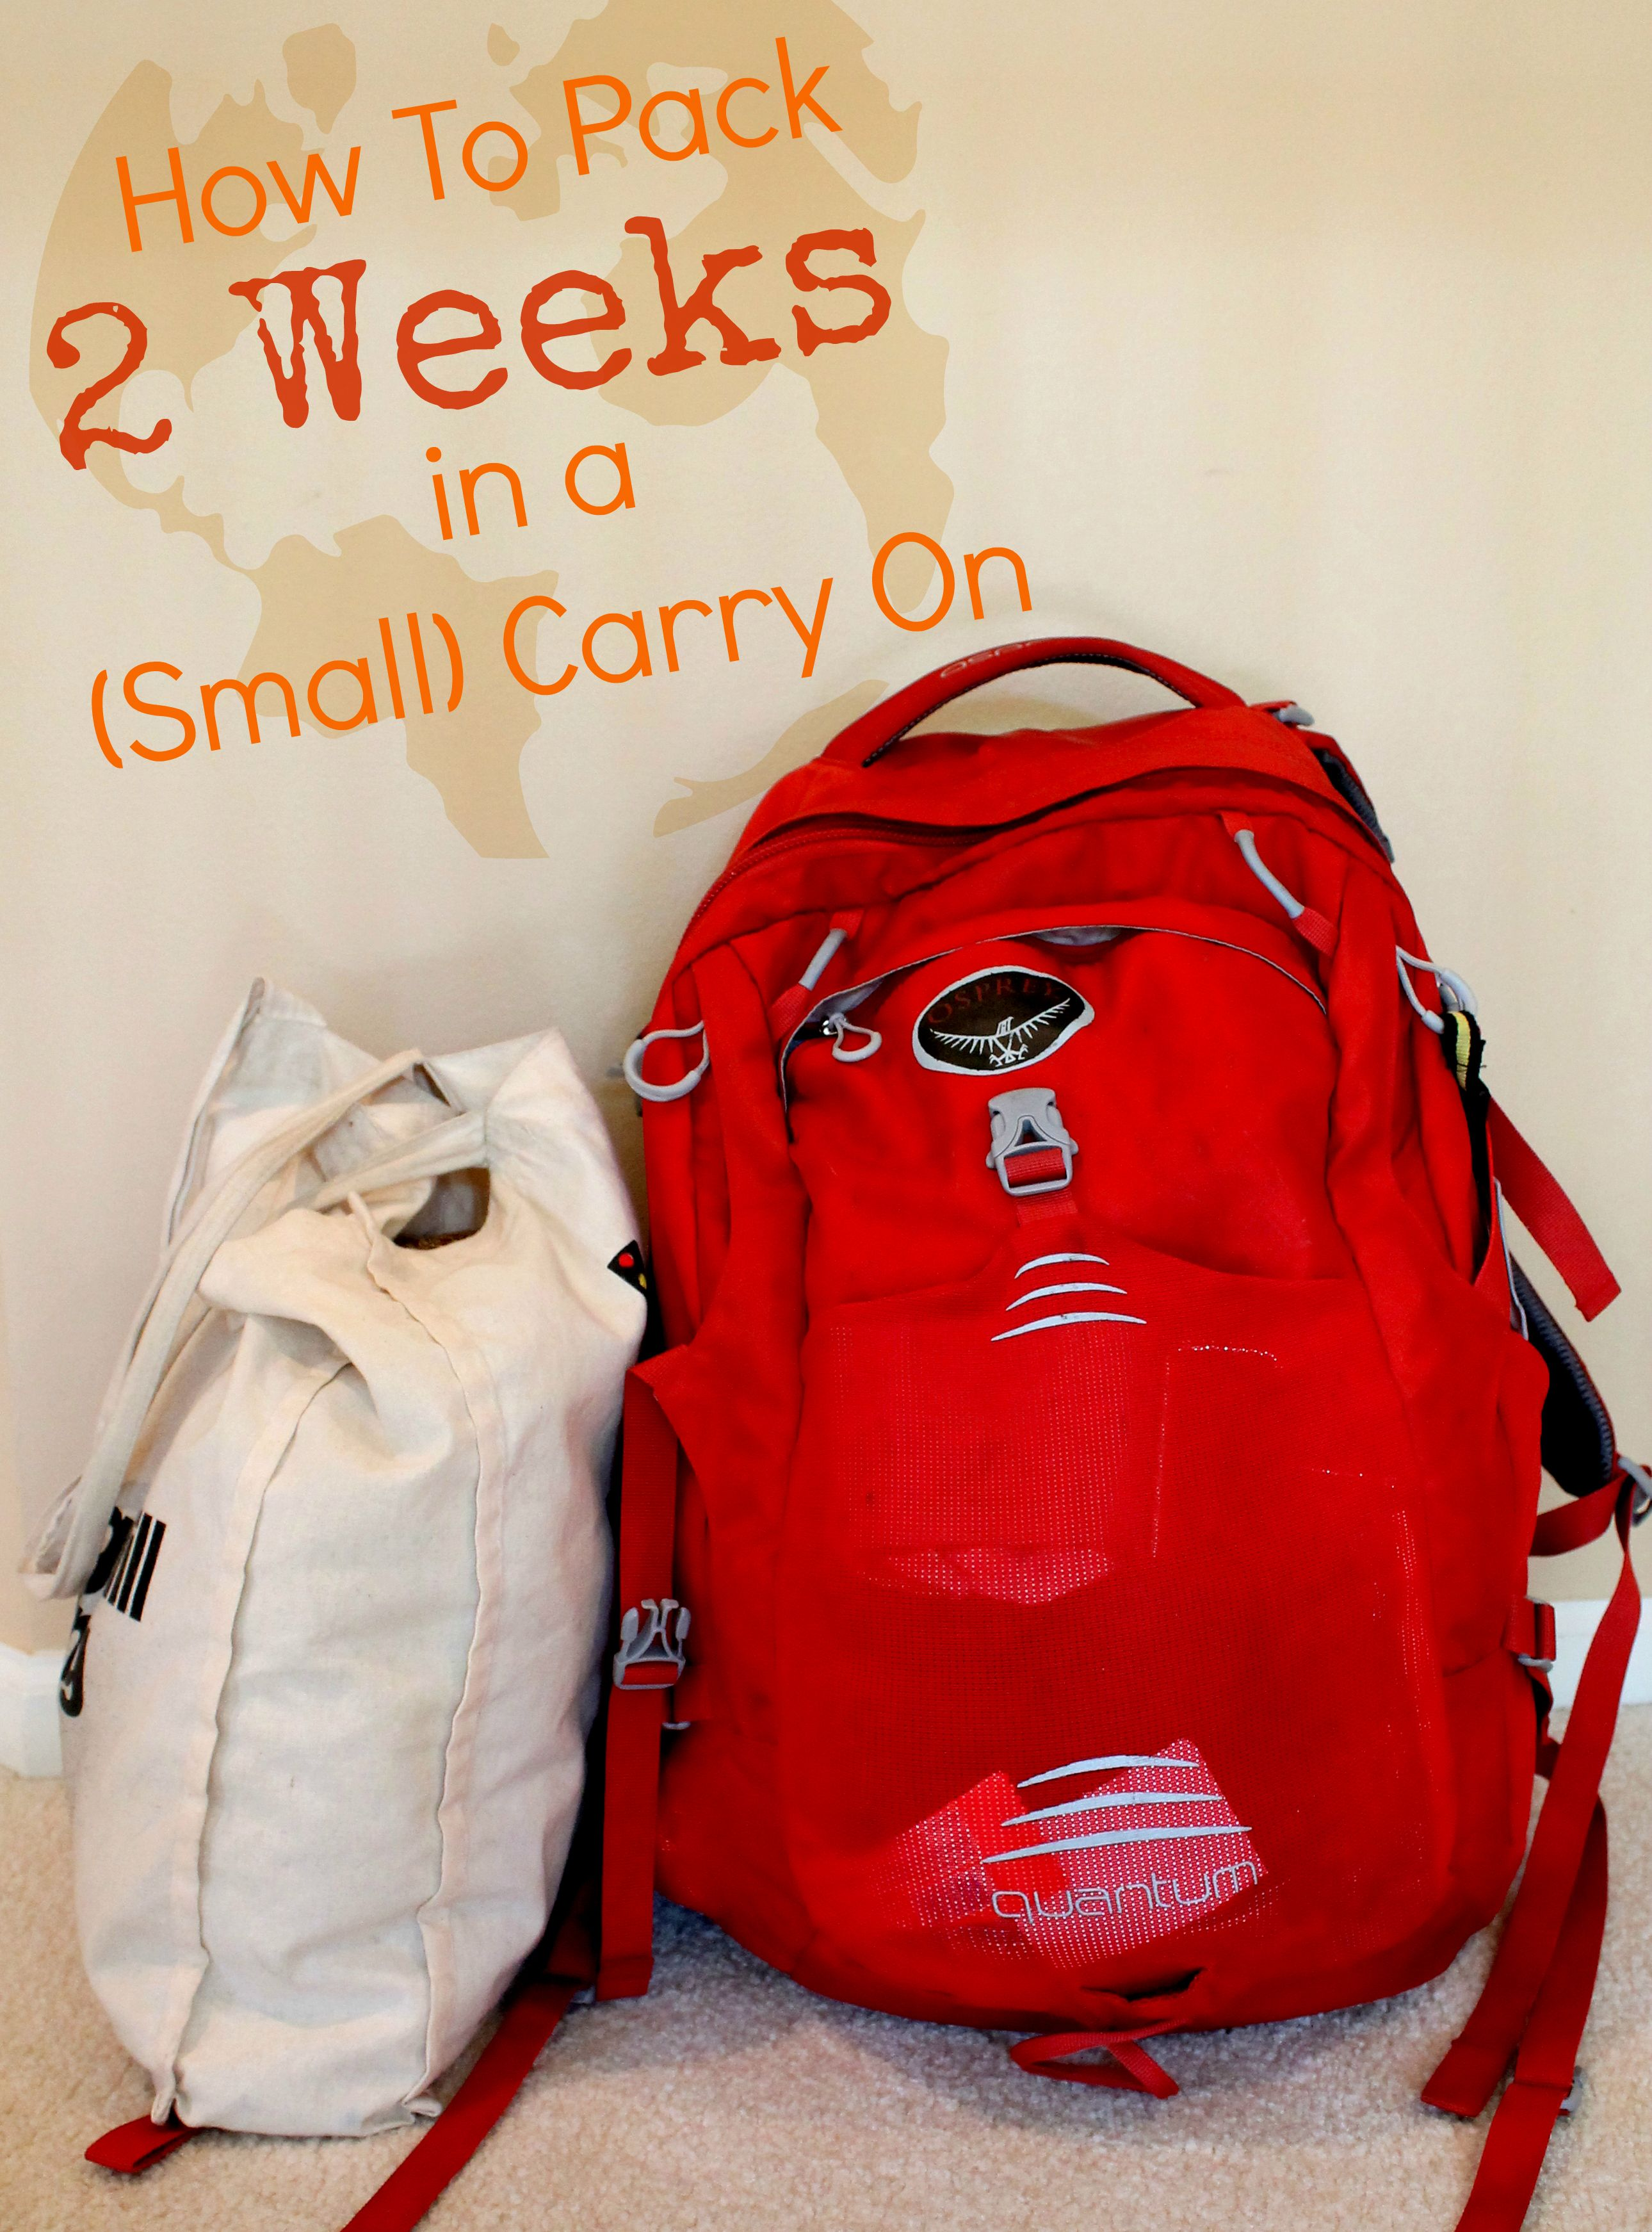 f6f7fb1fadb2 How to Pack 2 Weeks in a (Small) Carry On - How I went from being the girl  who brought a huge suitcase on a 1 week trip to the one who ...